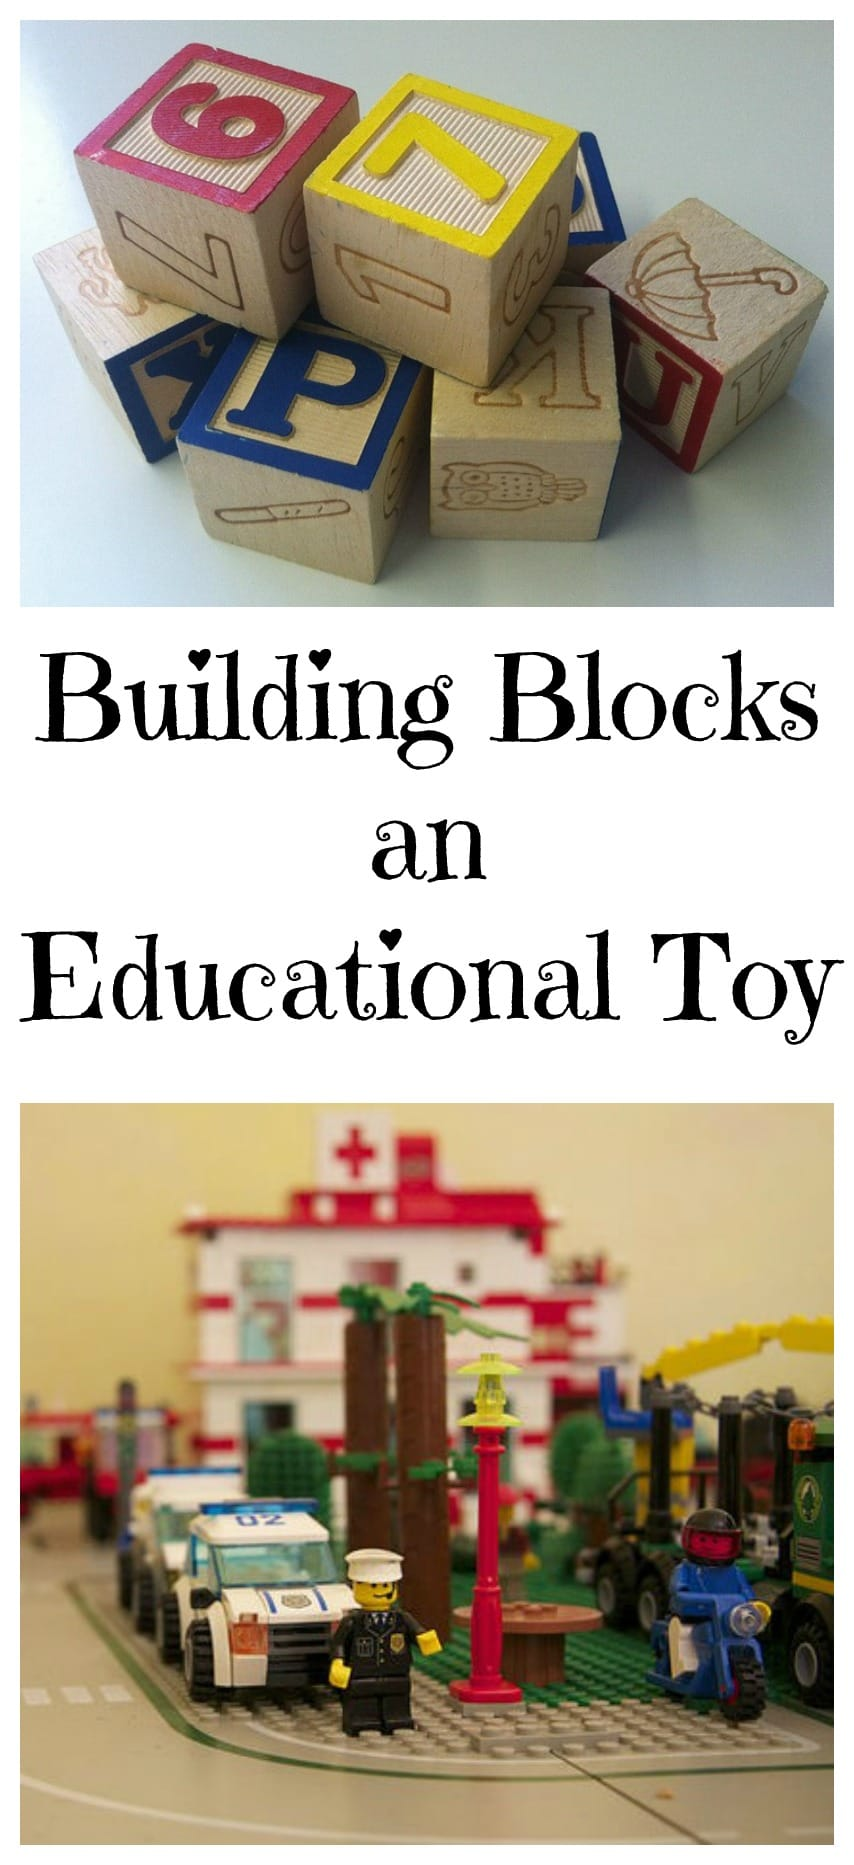 Building Blocks for Kids it's an Educational Game With Huge Learning Benefits